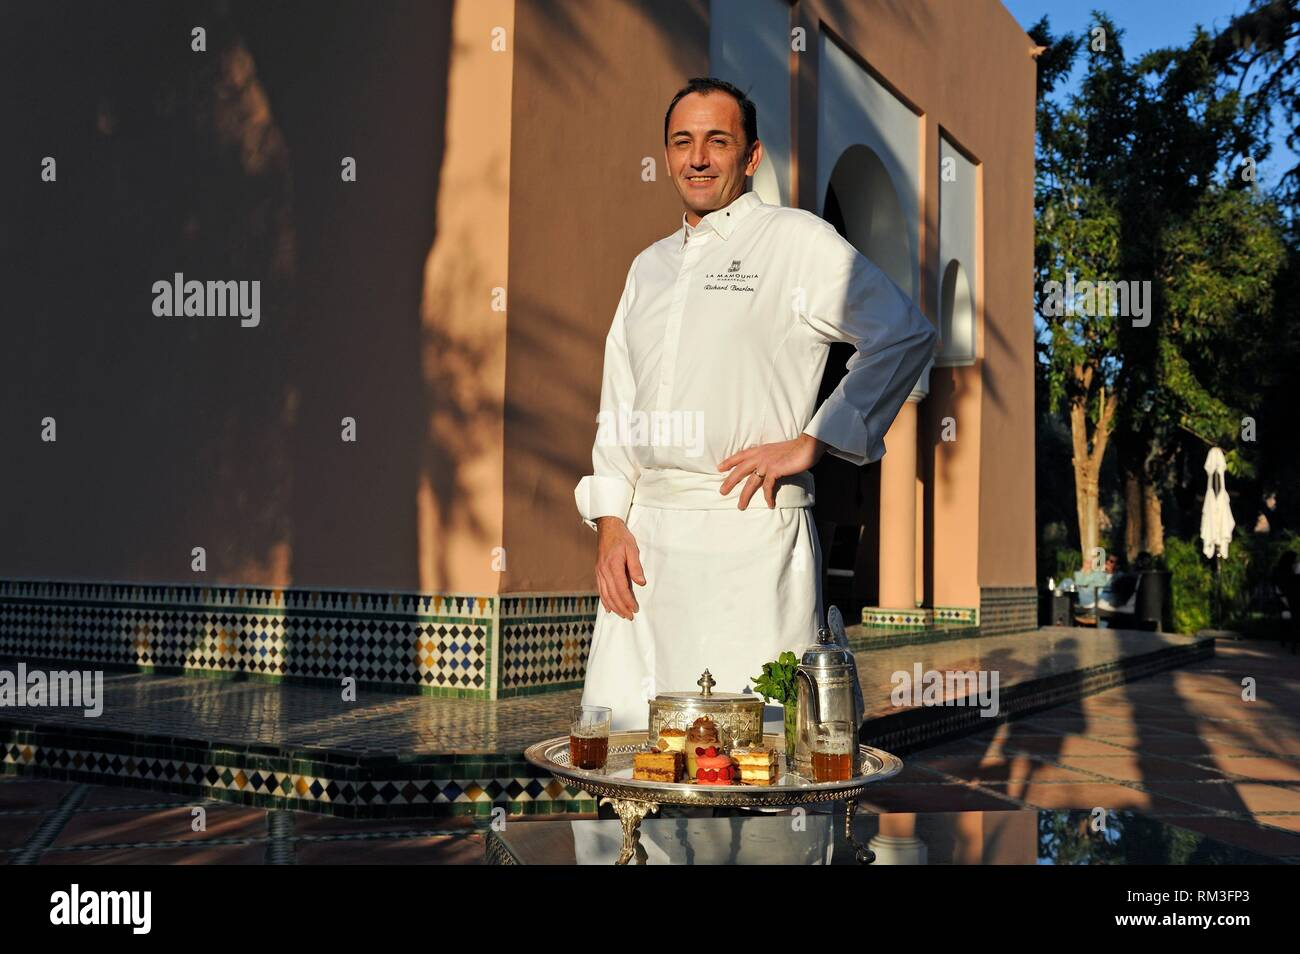 Richard Bourlon posing beside pastries designed by Pierre Herme and made by himself, served with mint tea at the pavillion Menzeh within the gardens - Stock Image